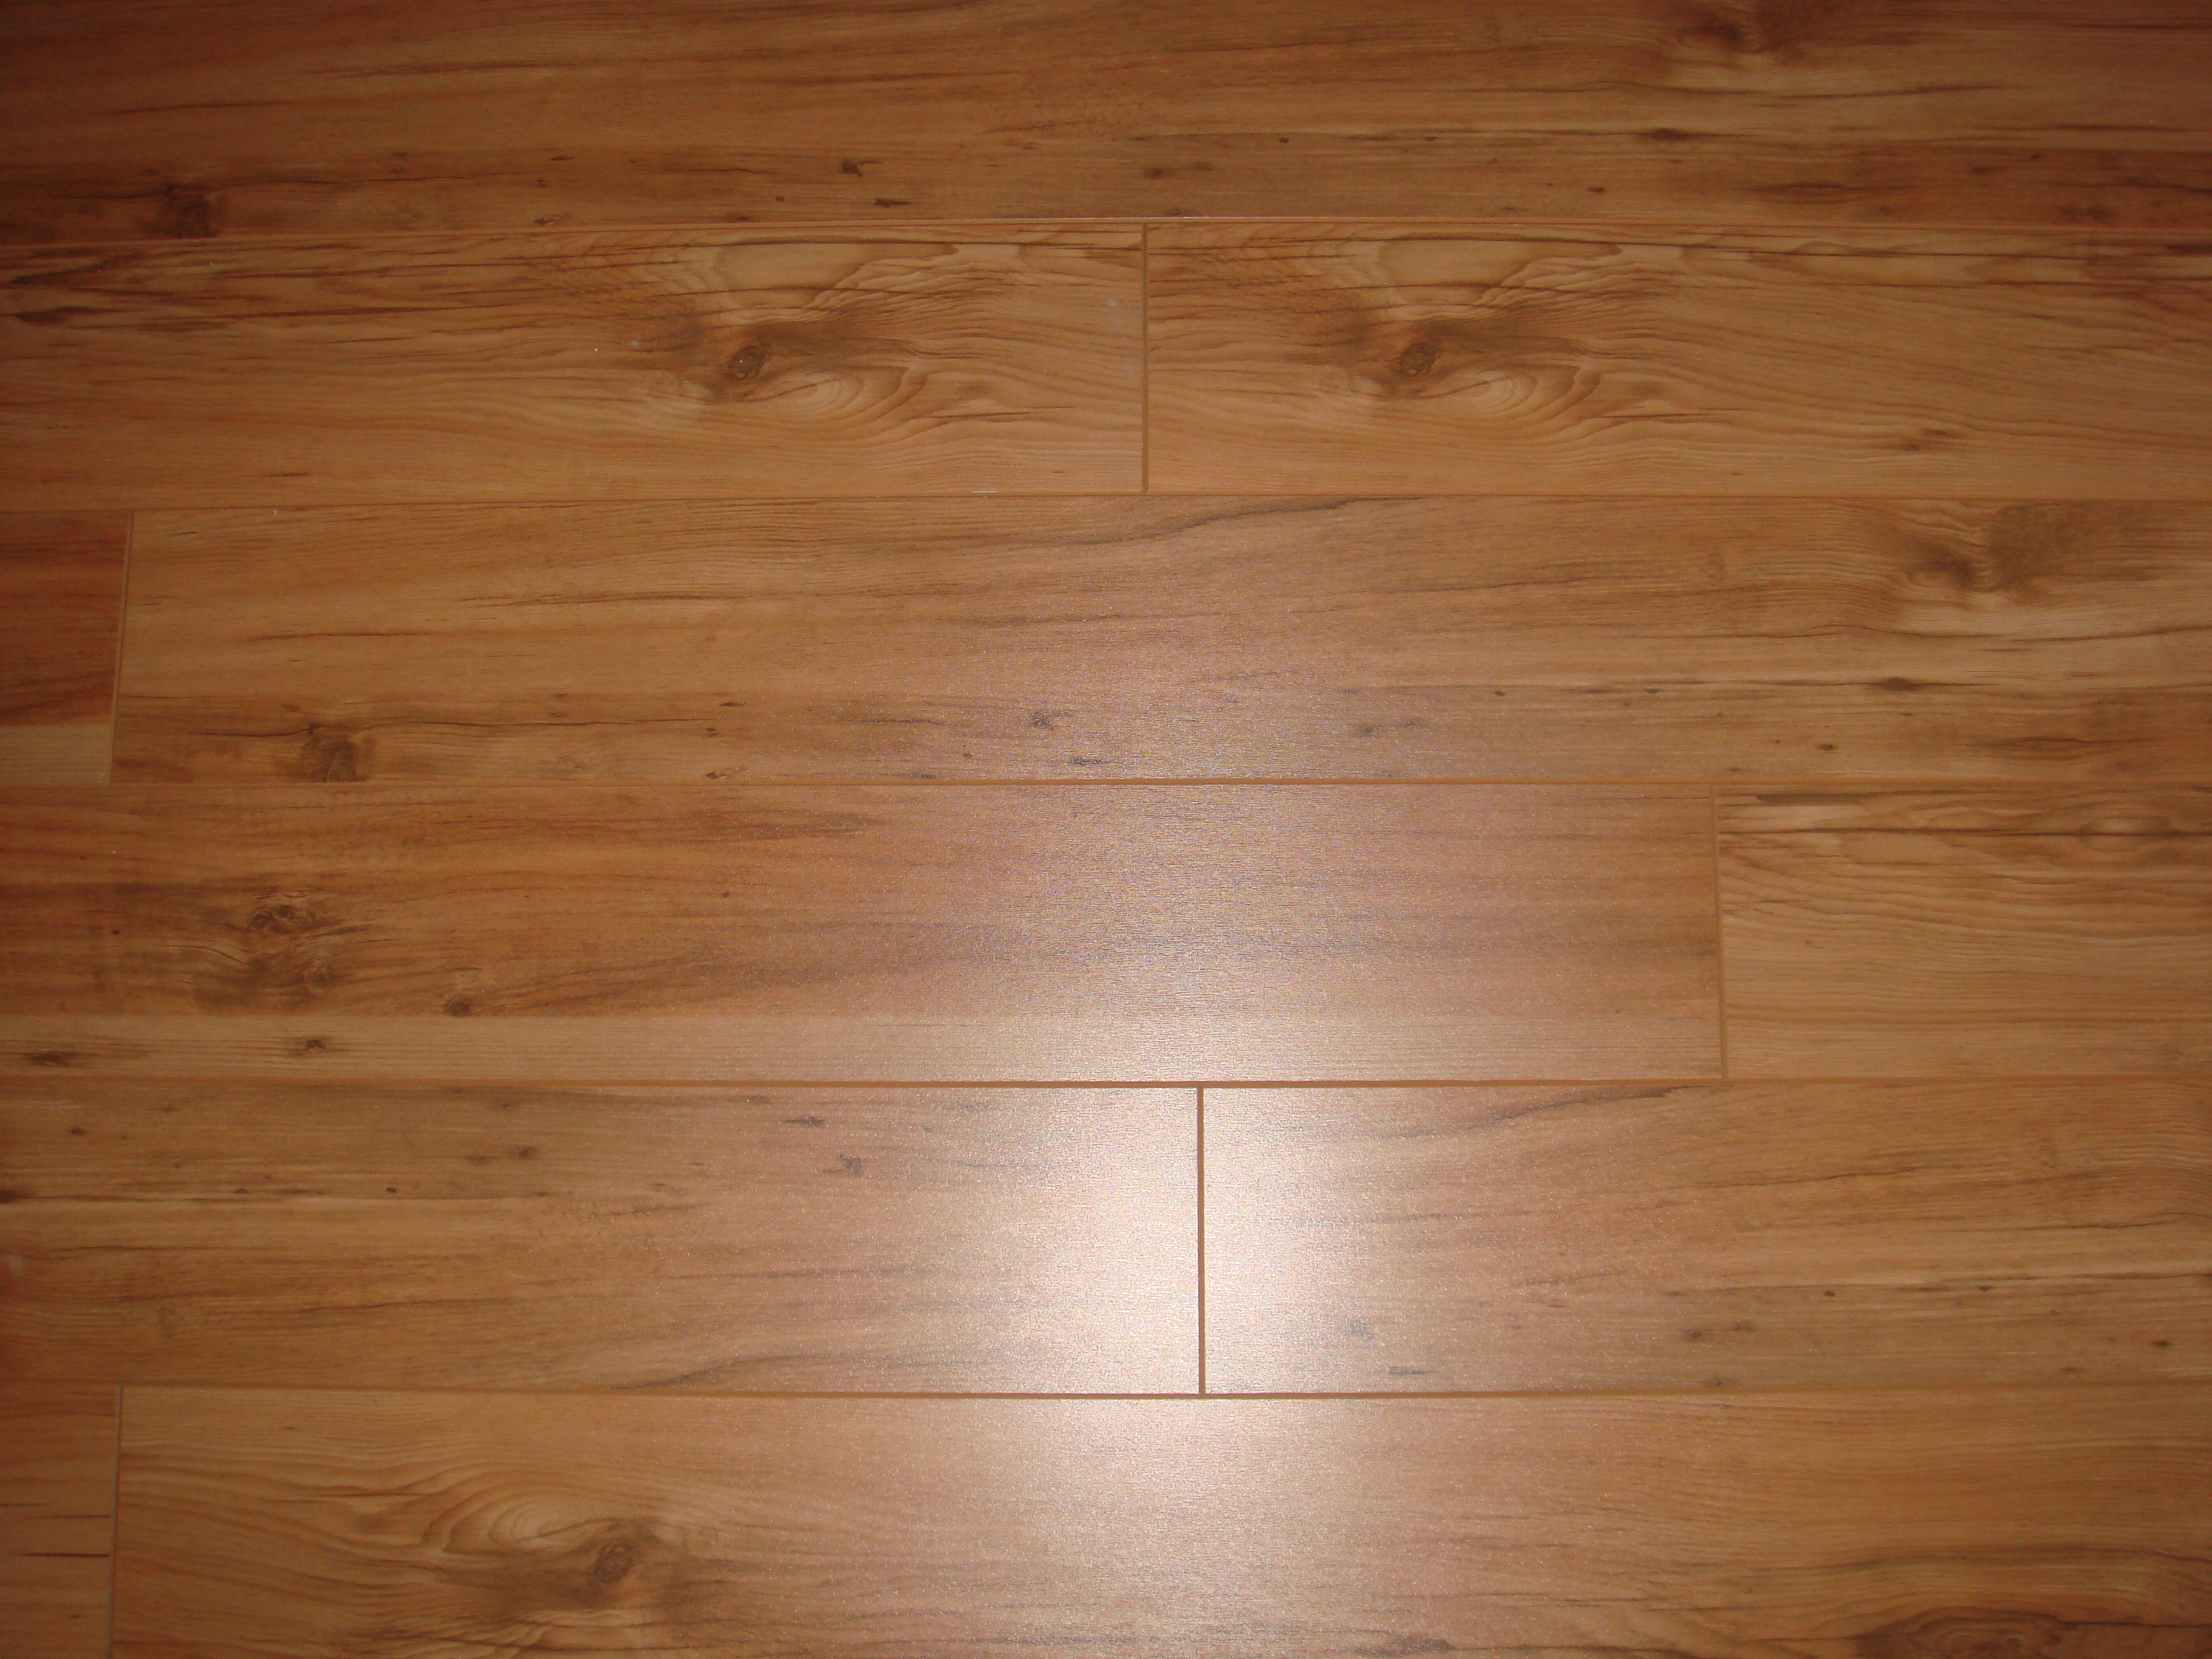 Wood flooring options laminate wood flooring options for Wood and laminate flooring